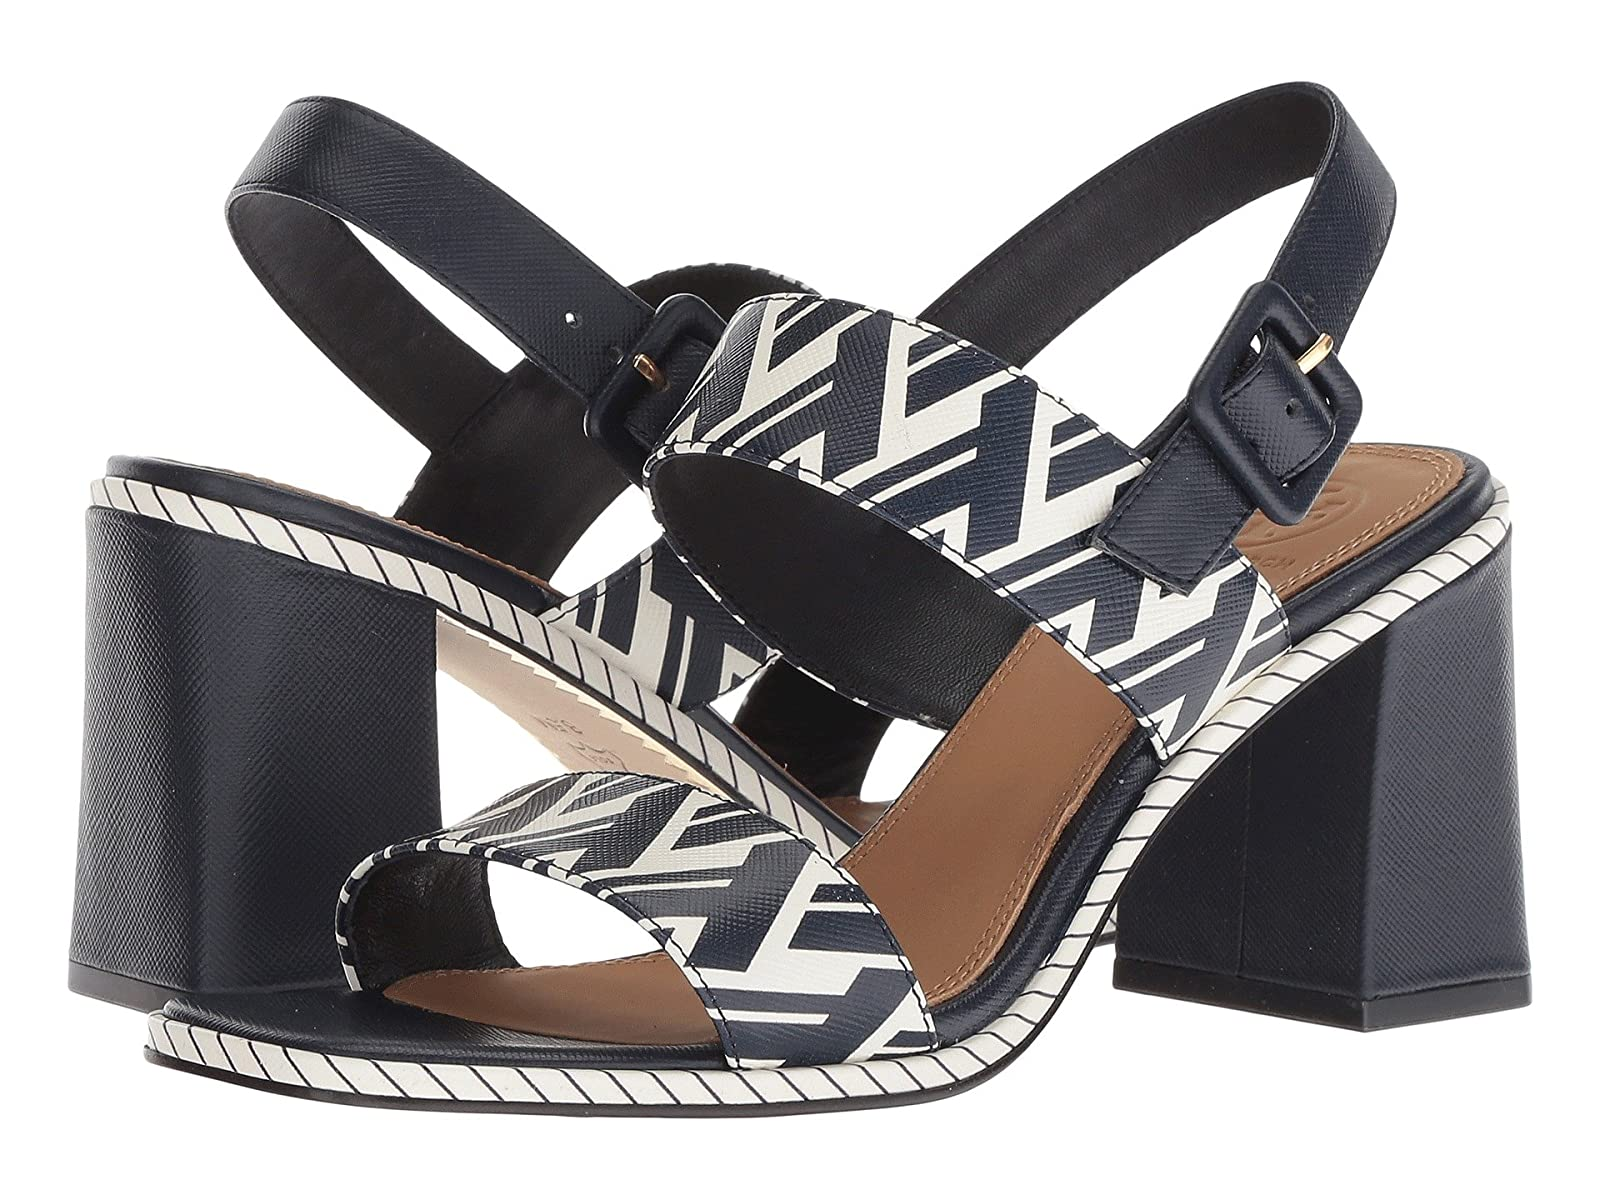 Tory Burch Delaney 75mm SandalAtmospheric grades have affordable shoes